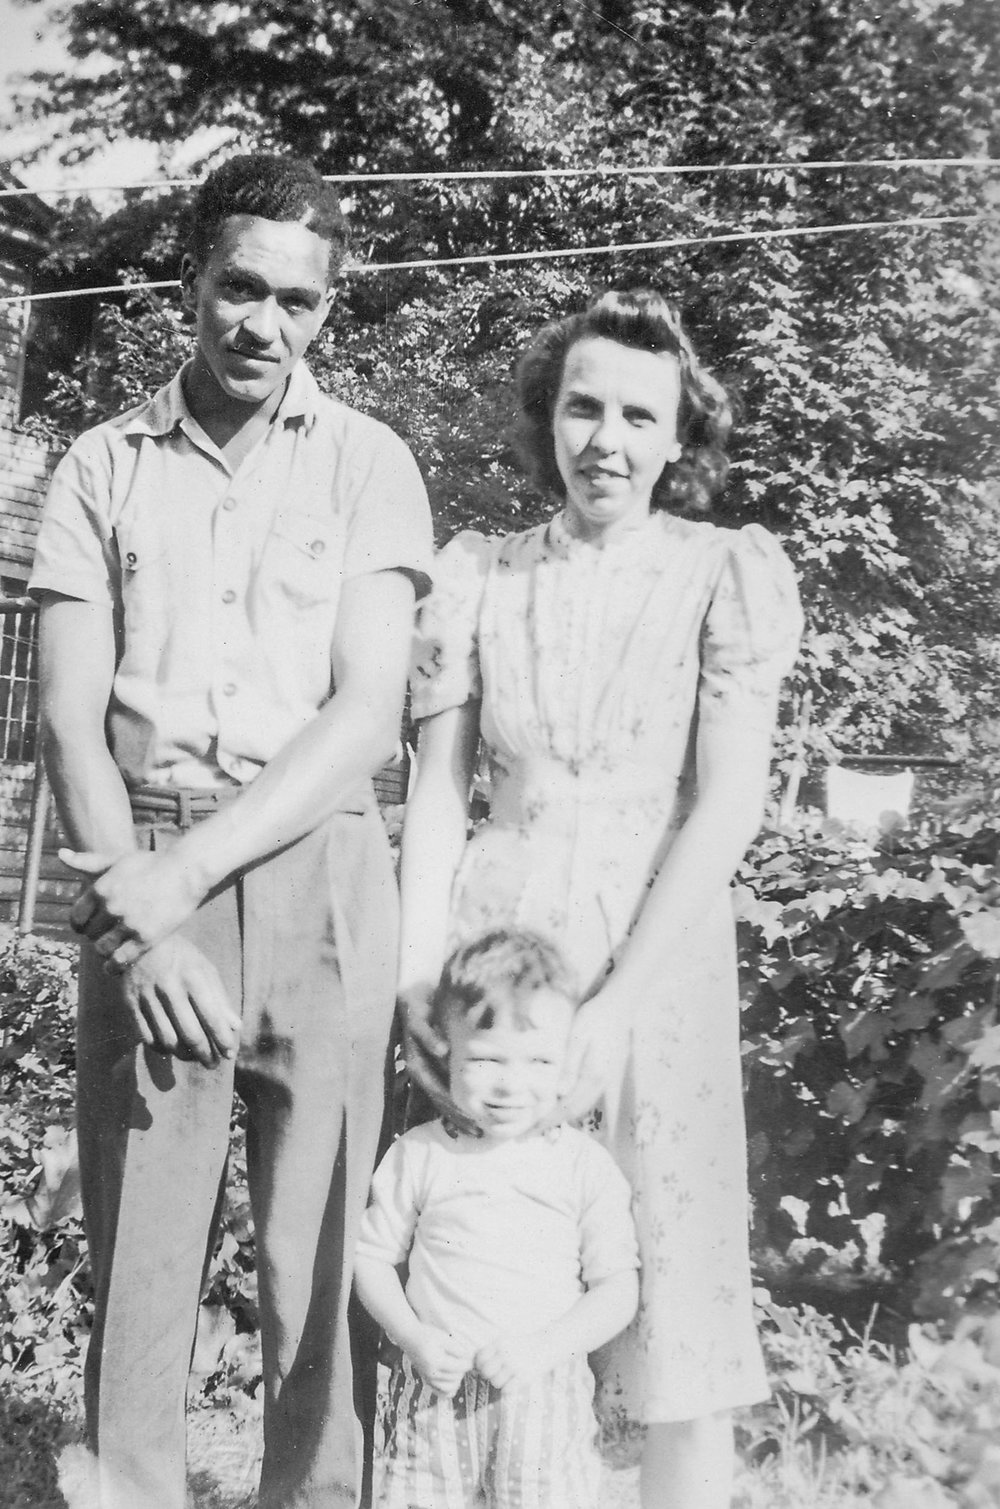 Photograph of Fran Linzy, his wife Anne Linzy, and their child Junior Linzy, taken in Geneva NY in the 1950's